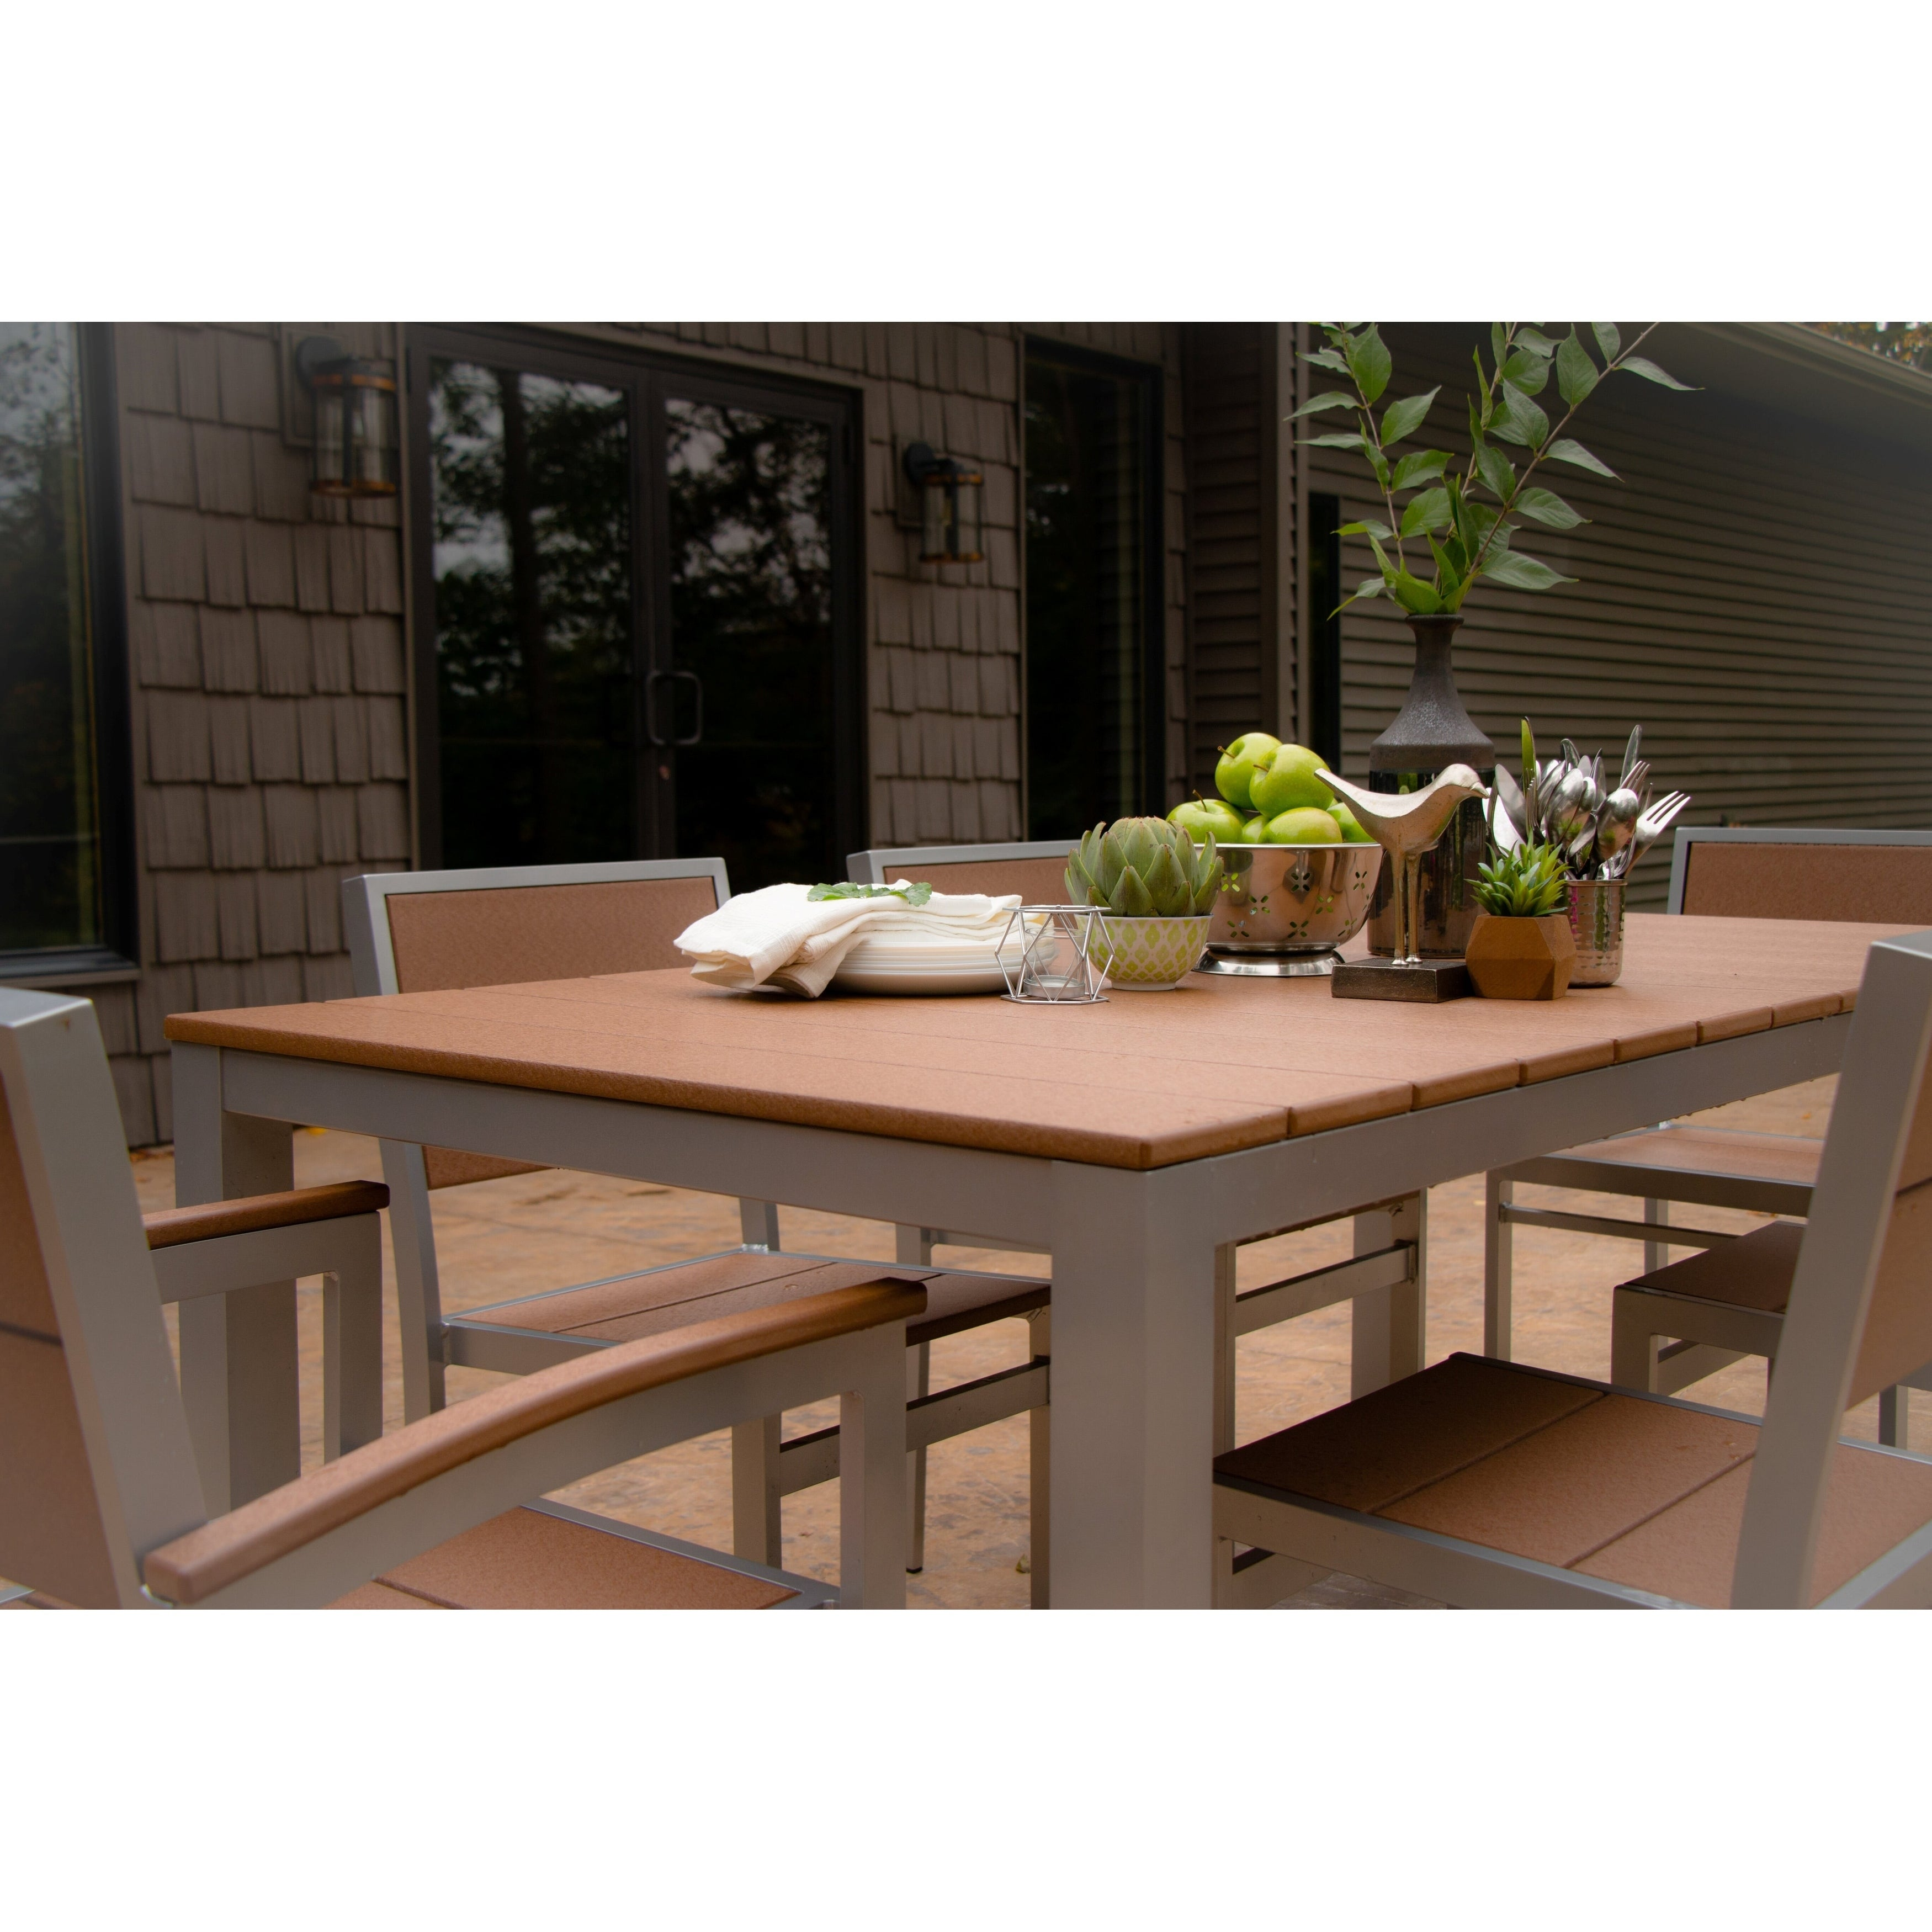 Awesome Wyndtree Aluminum Outdoor Dining Set Made In Usa Download Free Architecture Designs Scobabritishbridgeorg